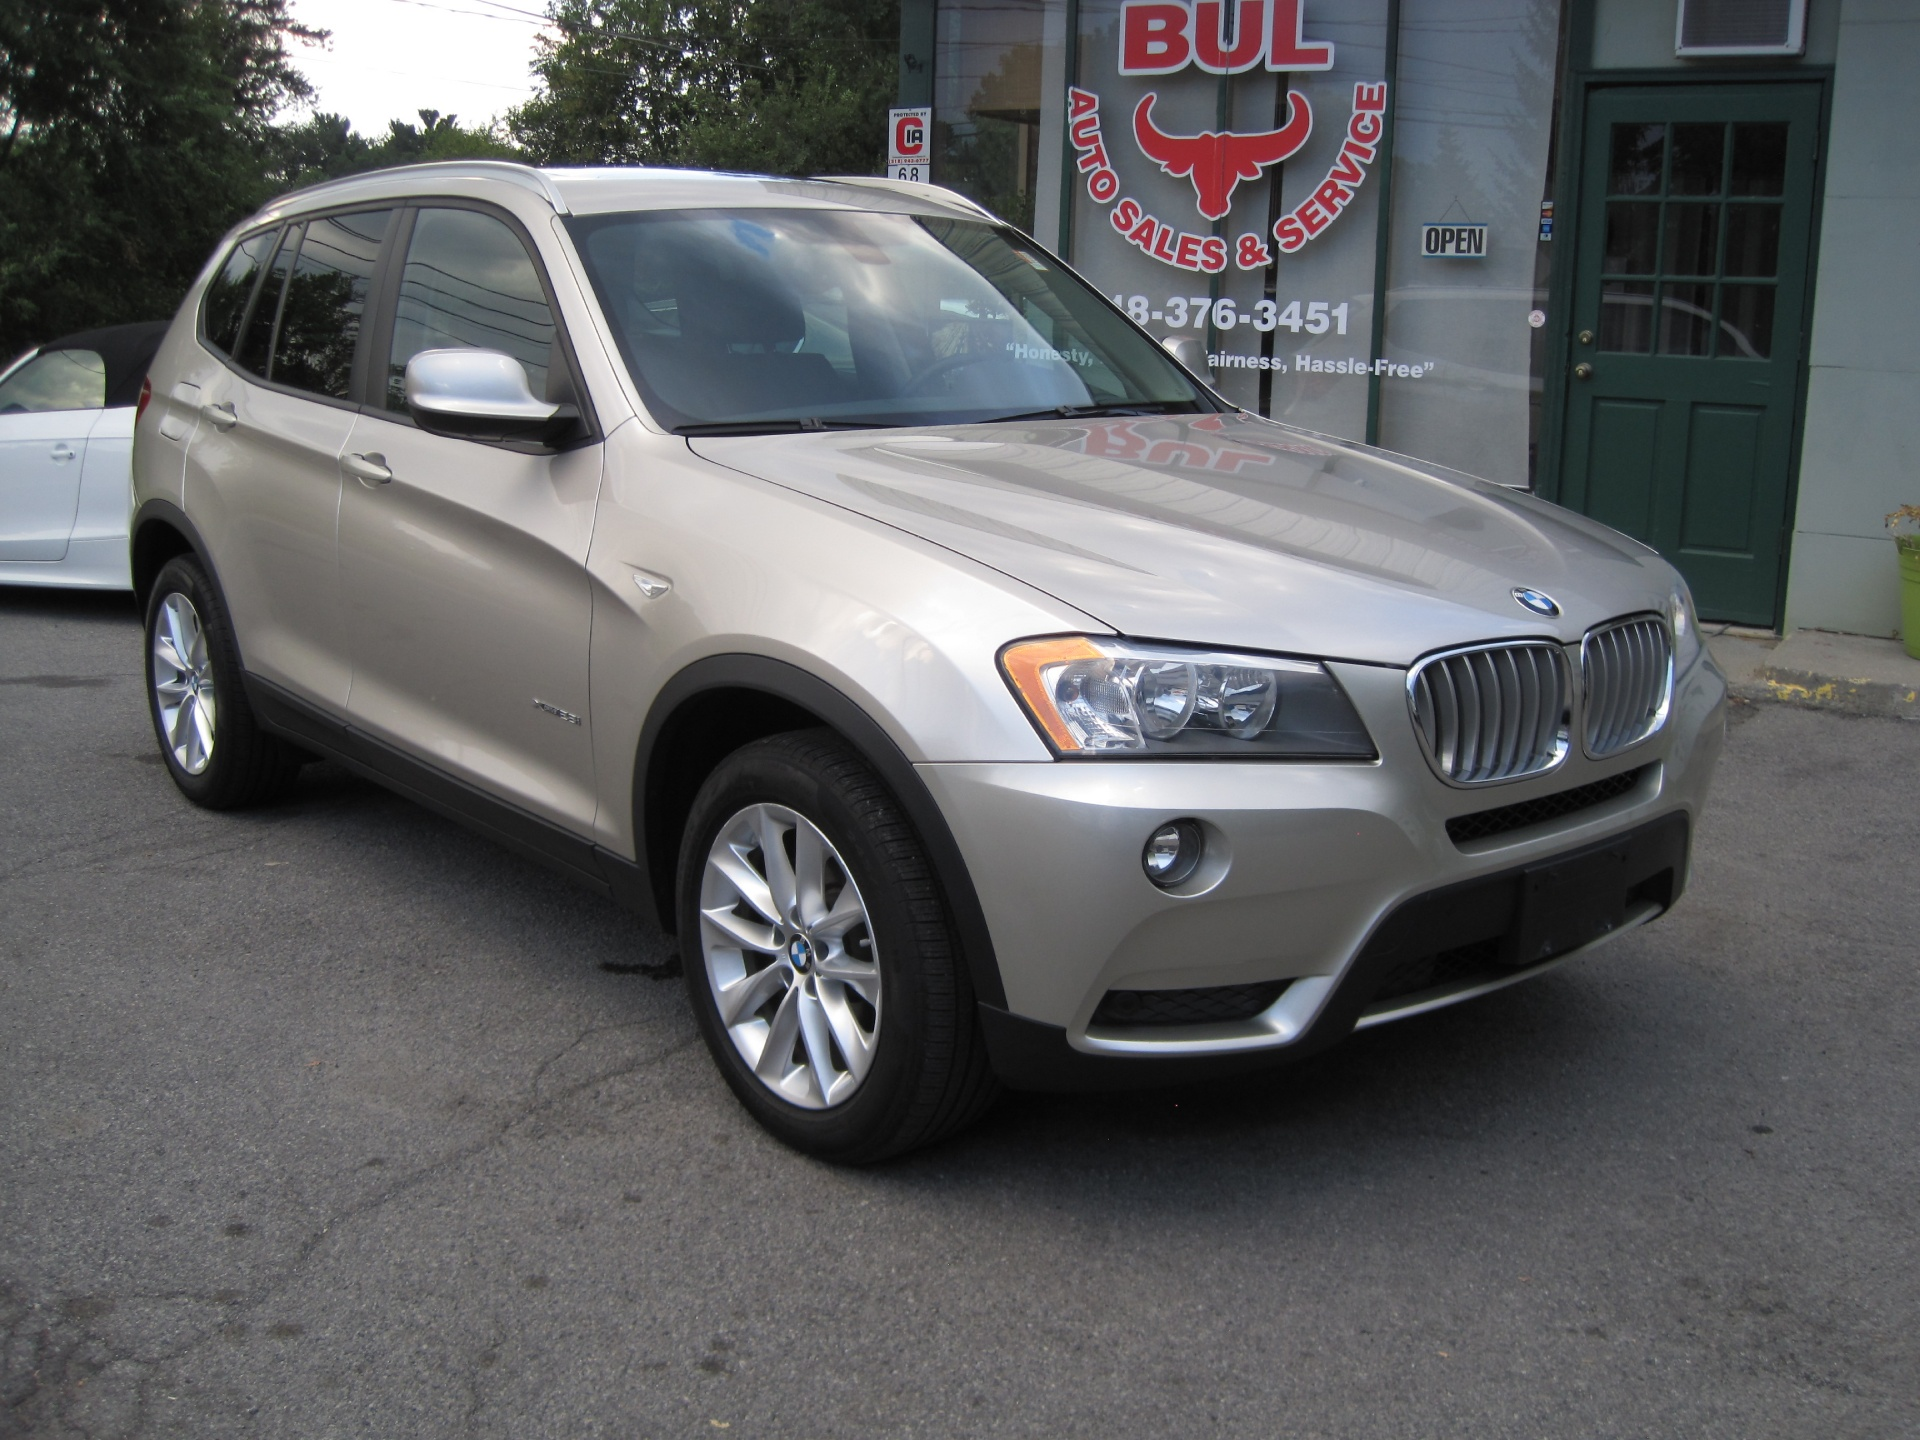 2013 bmw x3 xdrive28i loaded msrp new was 48 495 super low miles stock 15130 for sale near. Black Bedroom Furniture Sets. Home Design Ideas